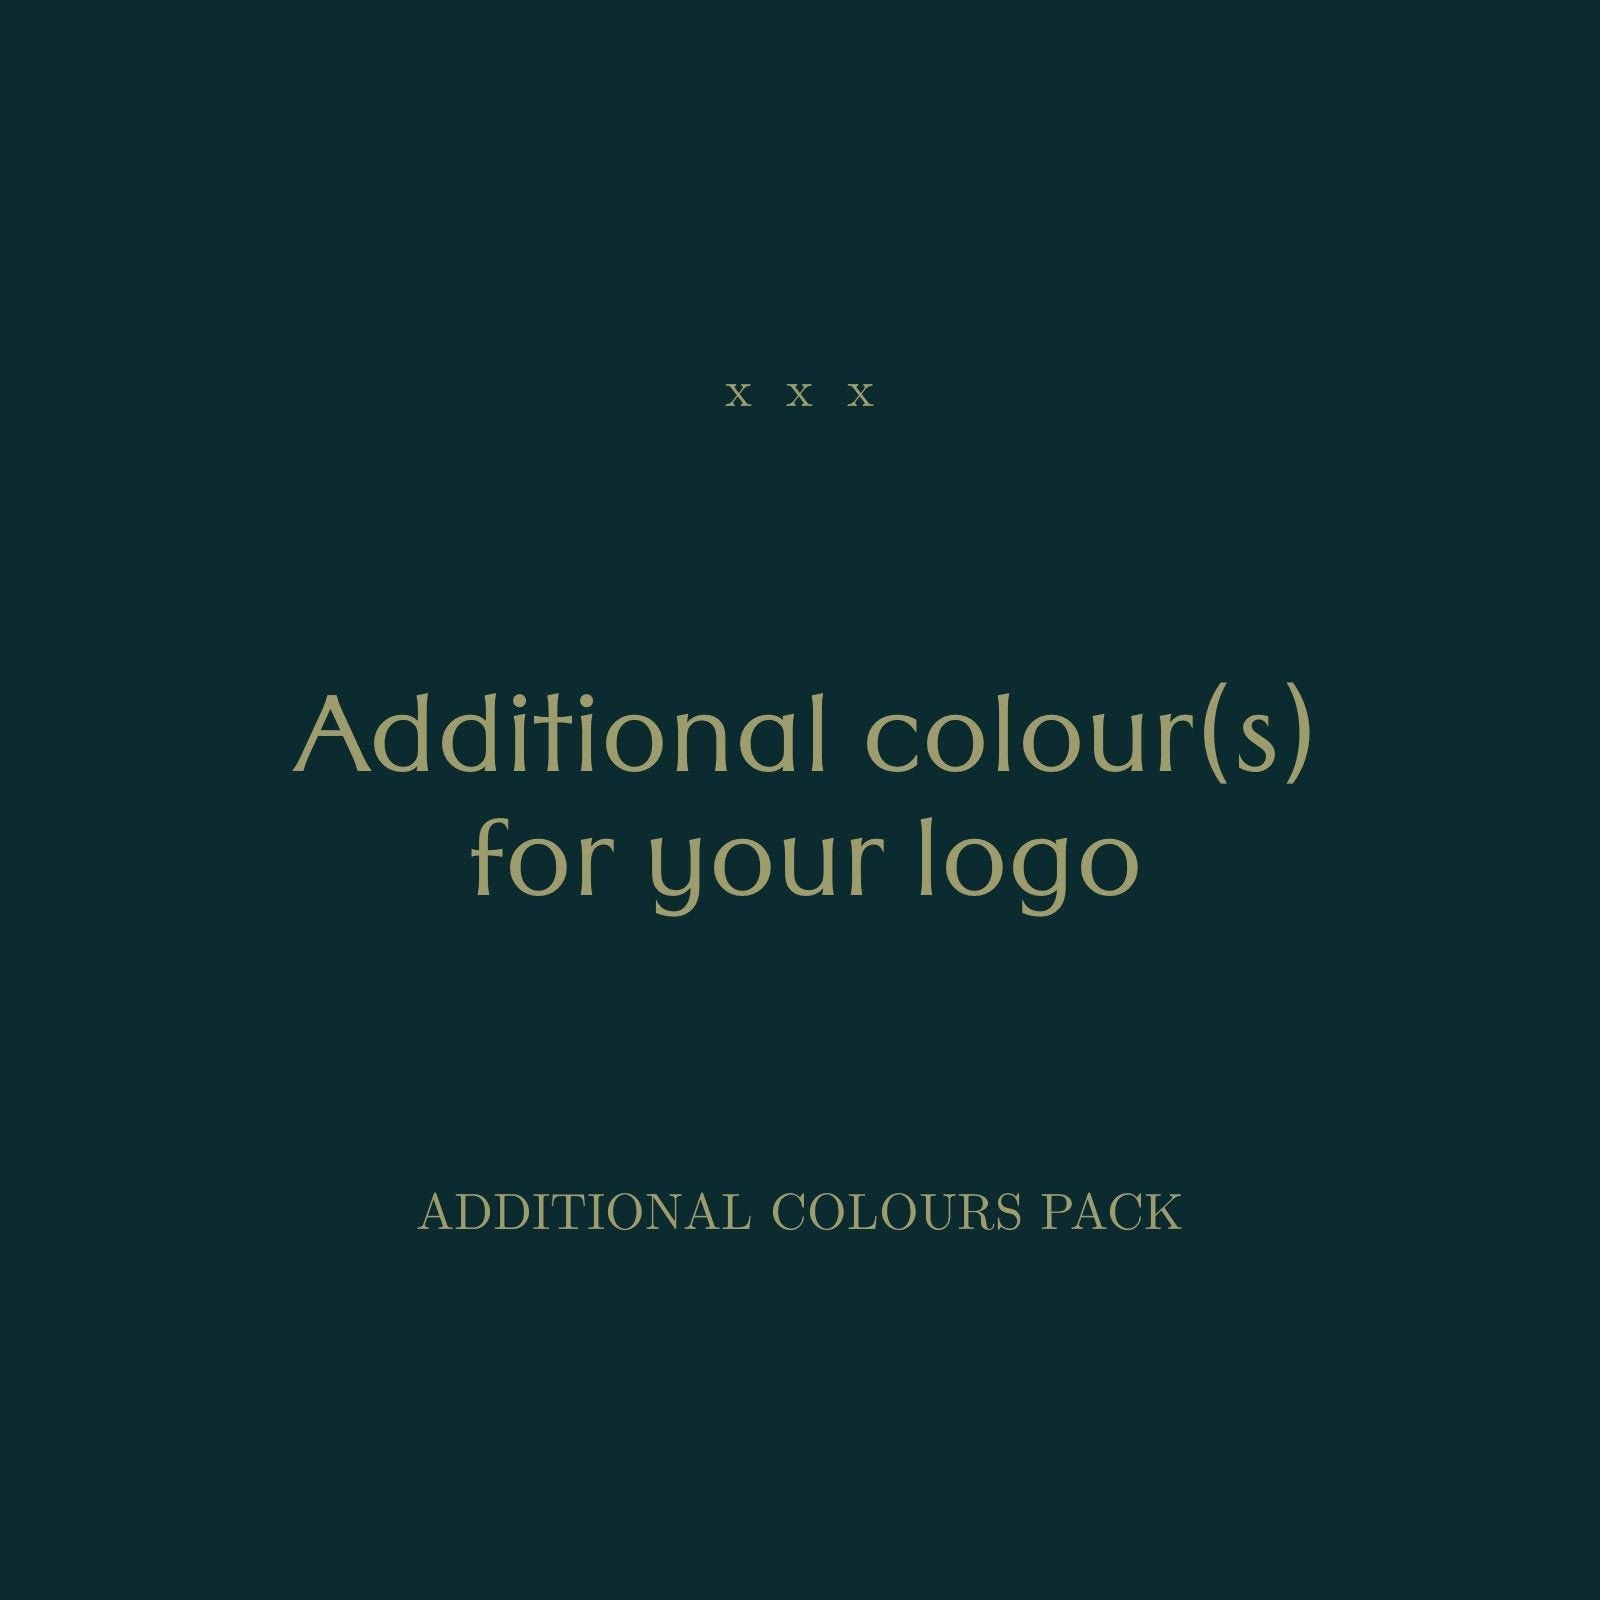 Additional Colours For Premade Logos Extra Colours Pack Rgb In 2020 Colours Premade Logo Premade